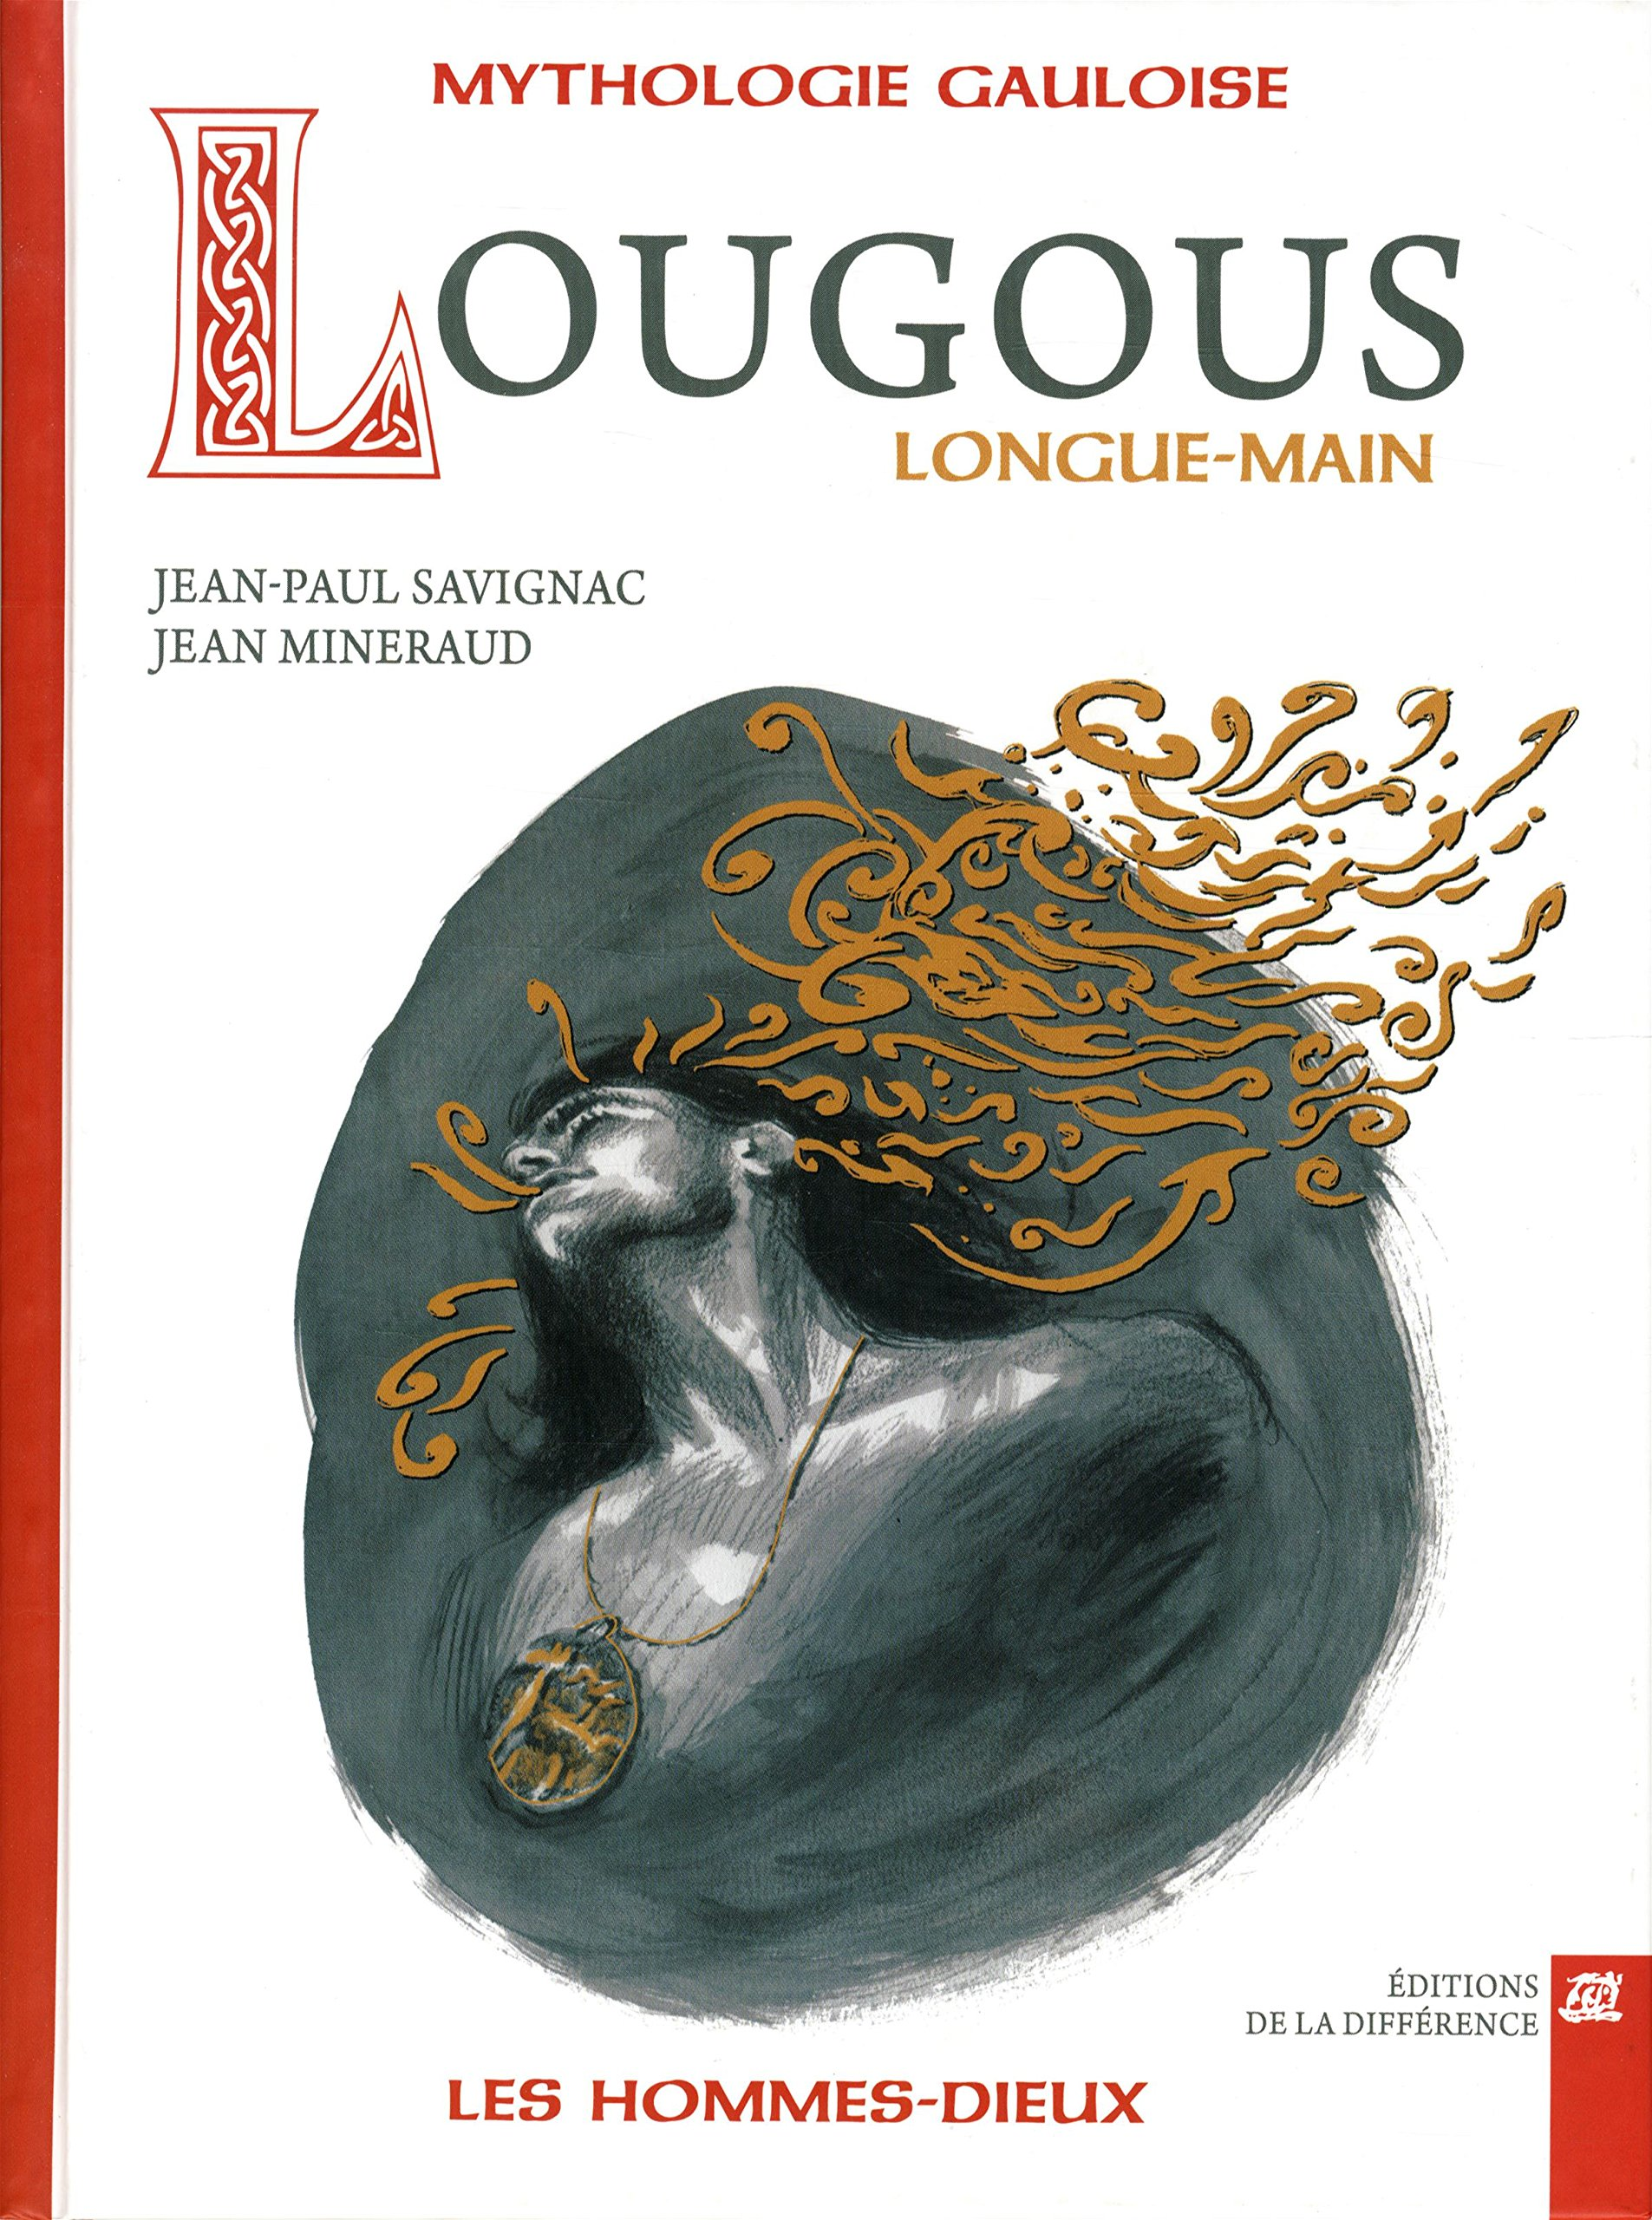 Mythologie Gauloise - Lougous, longue-main (Jean-Paul Savignac)